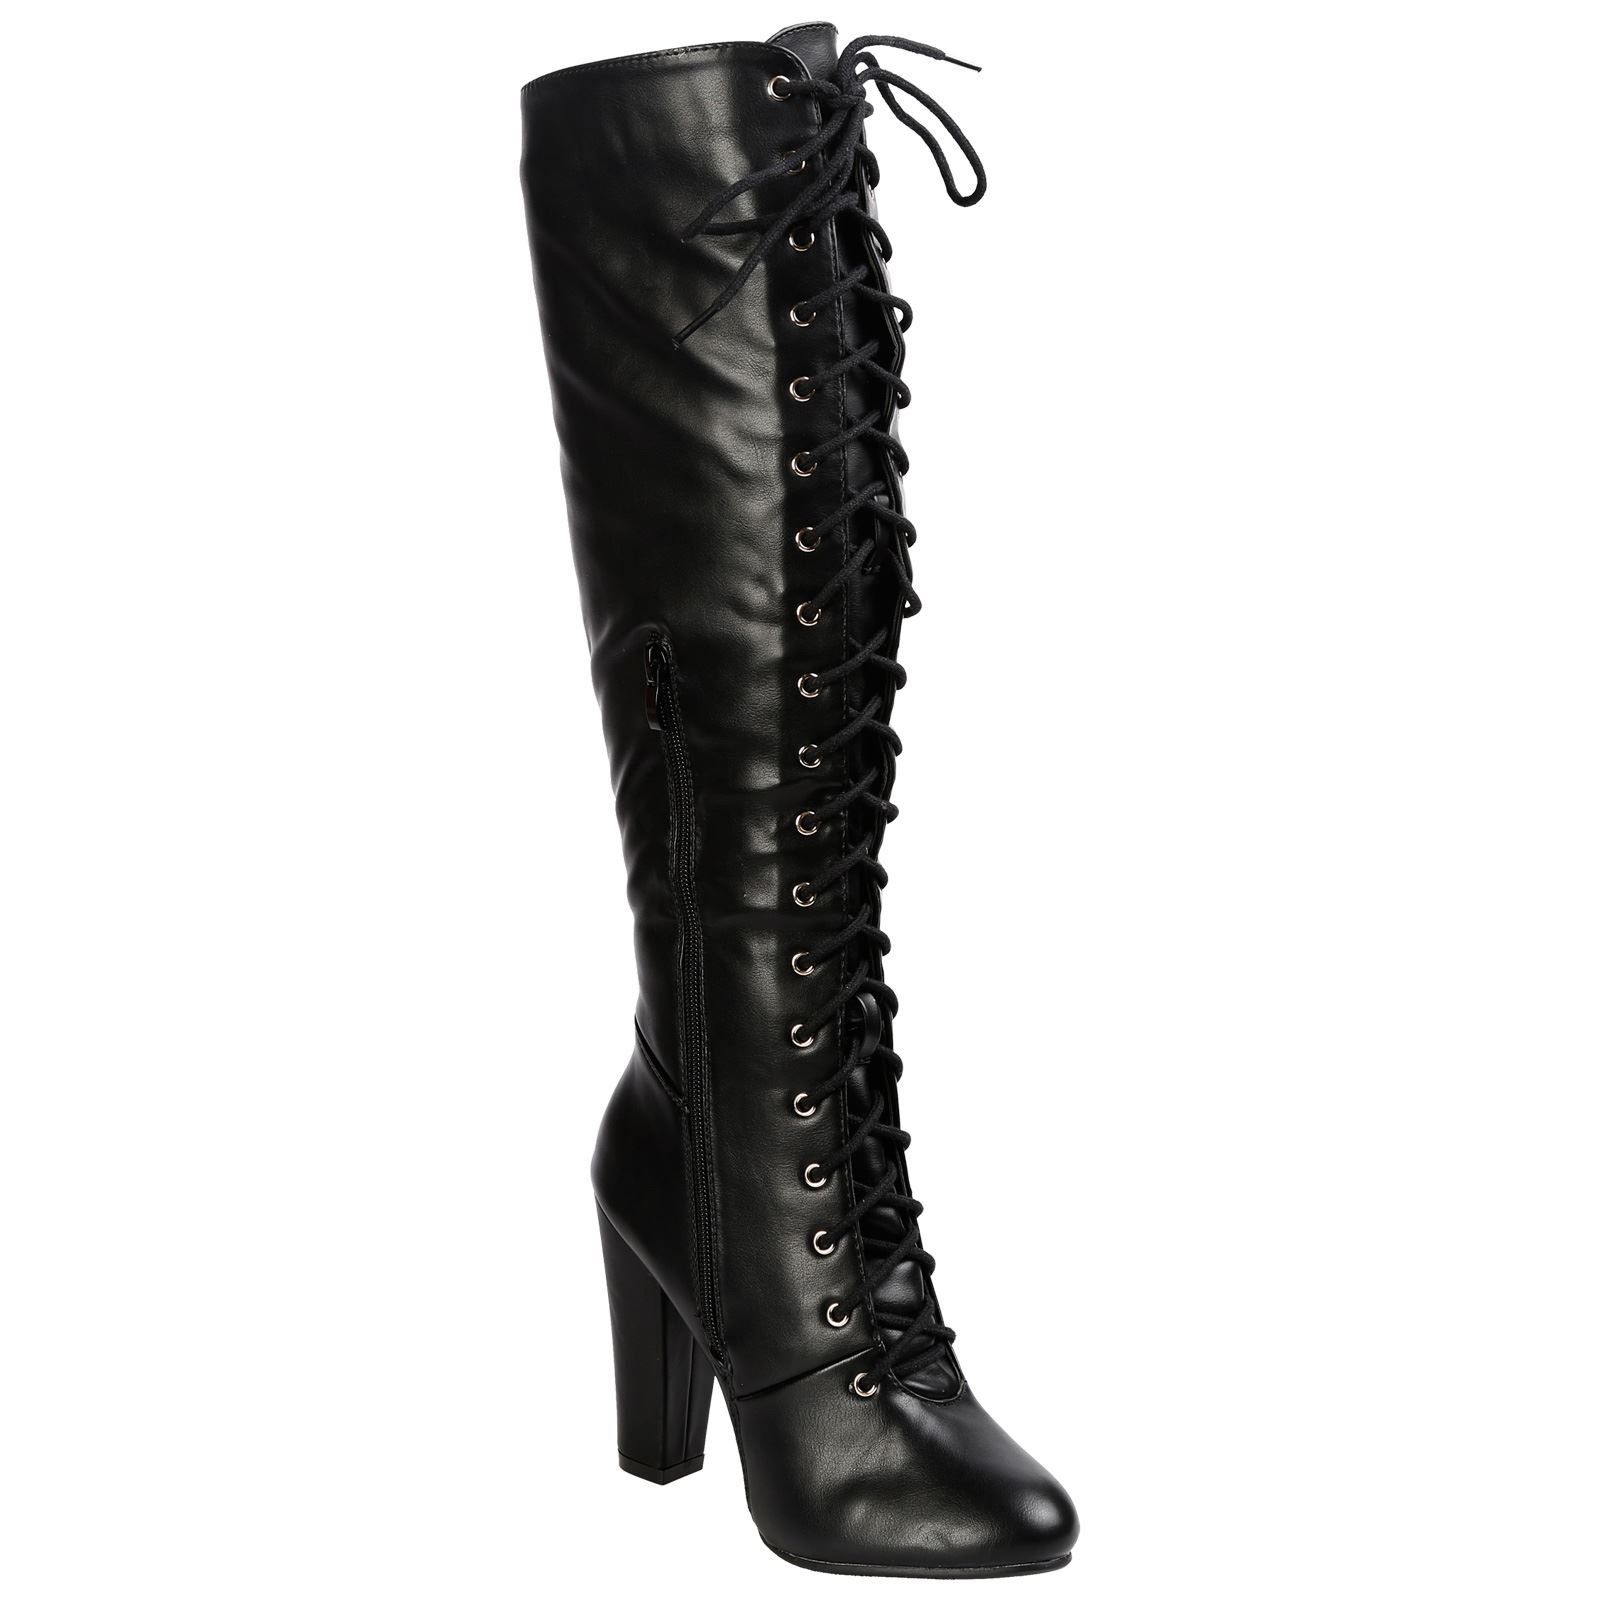 WOMENS-BOOTS-LADIES-KNEE-HIGH-MID-CALF-LACE-UP-BLOCK-HEEL-PARTY-CASUAL-SIZE-NEW